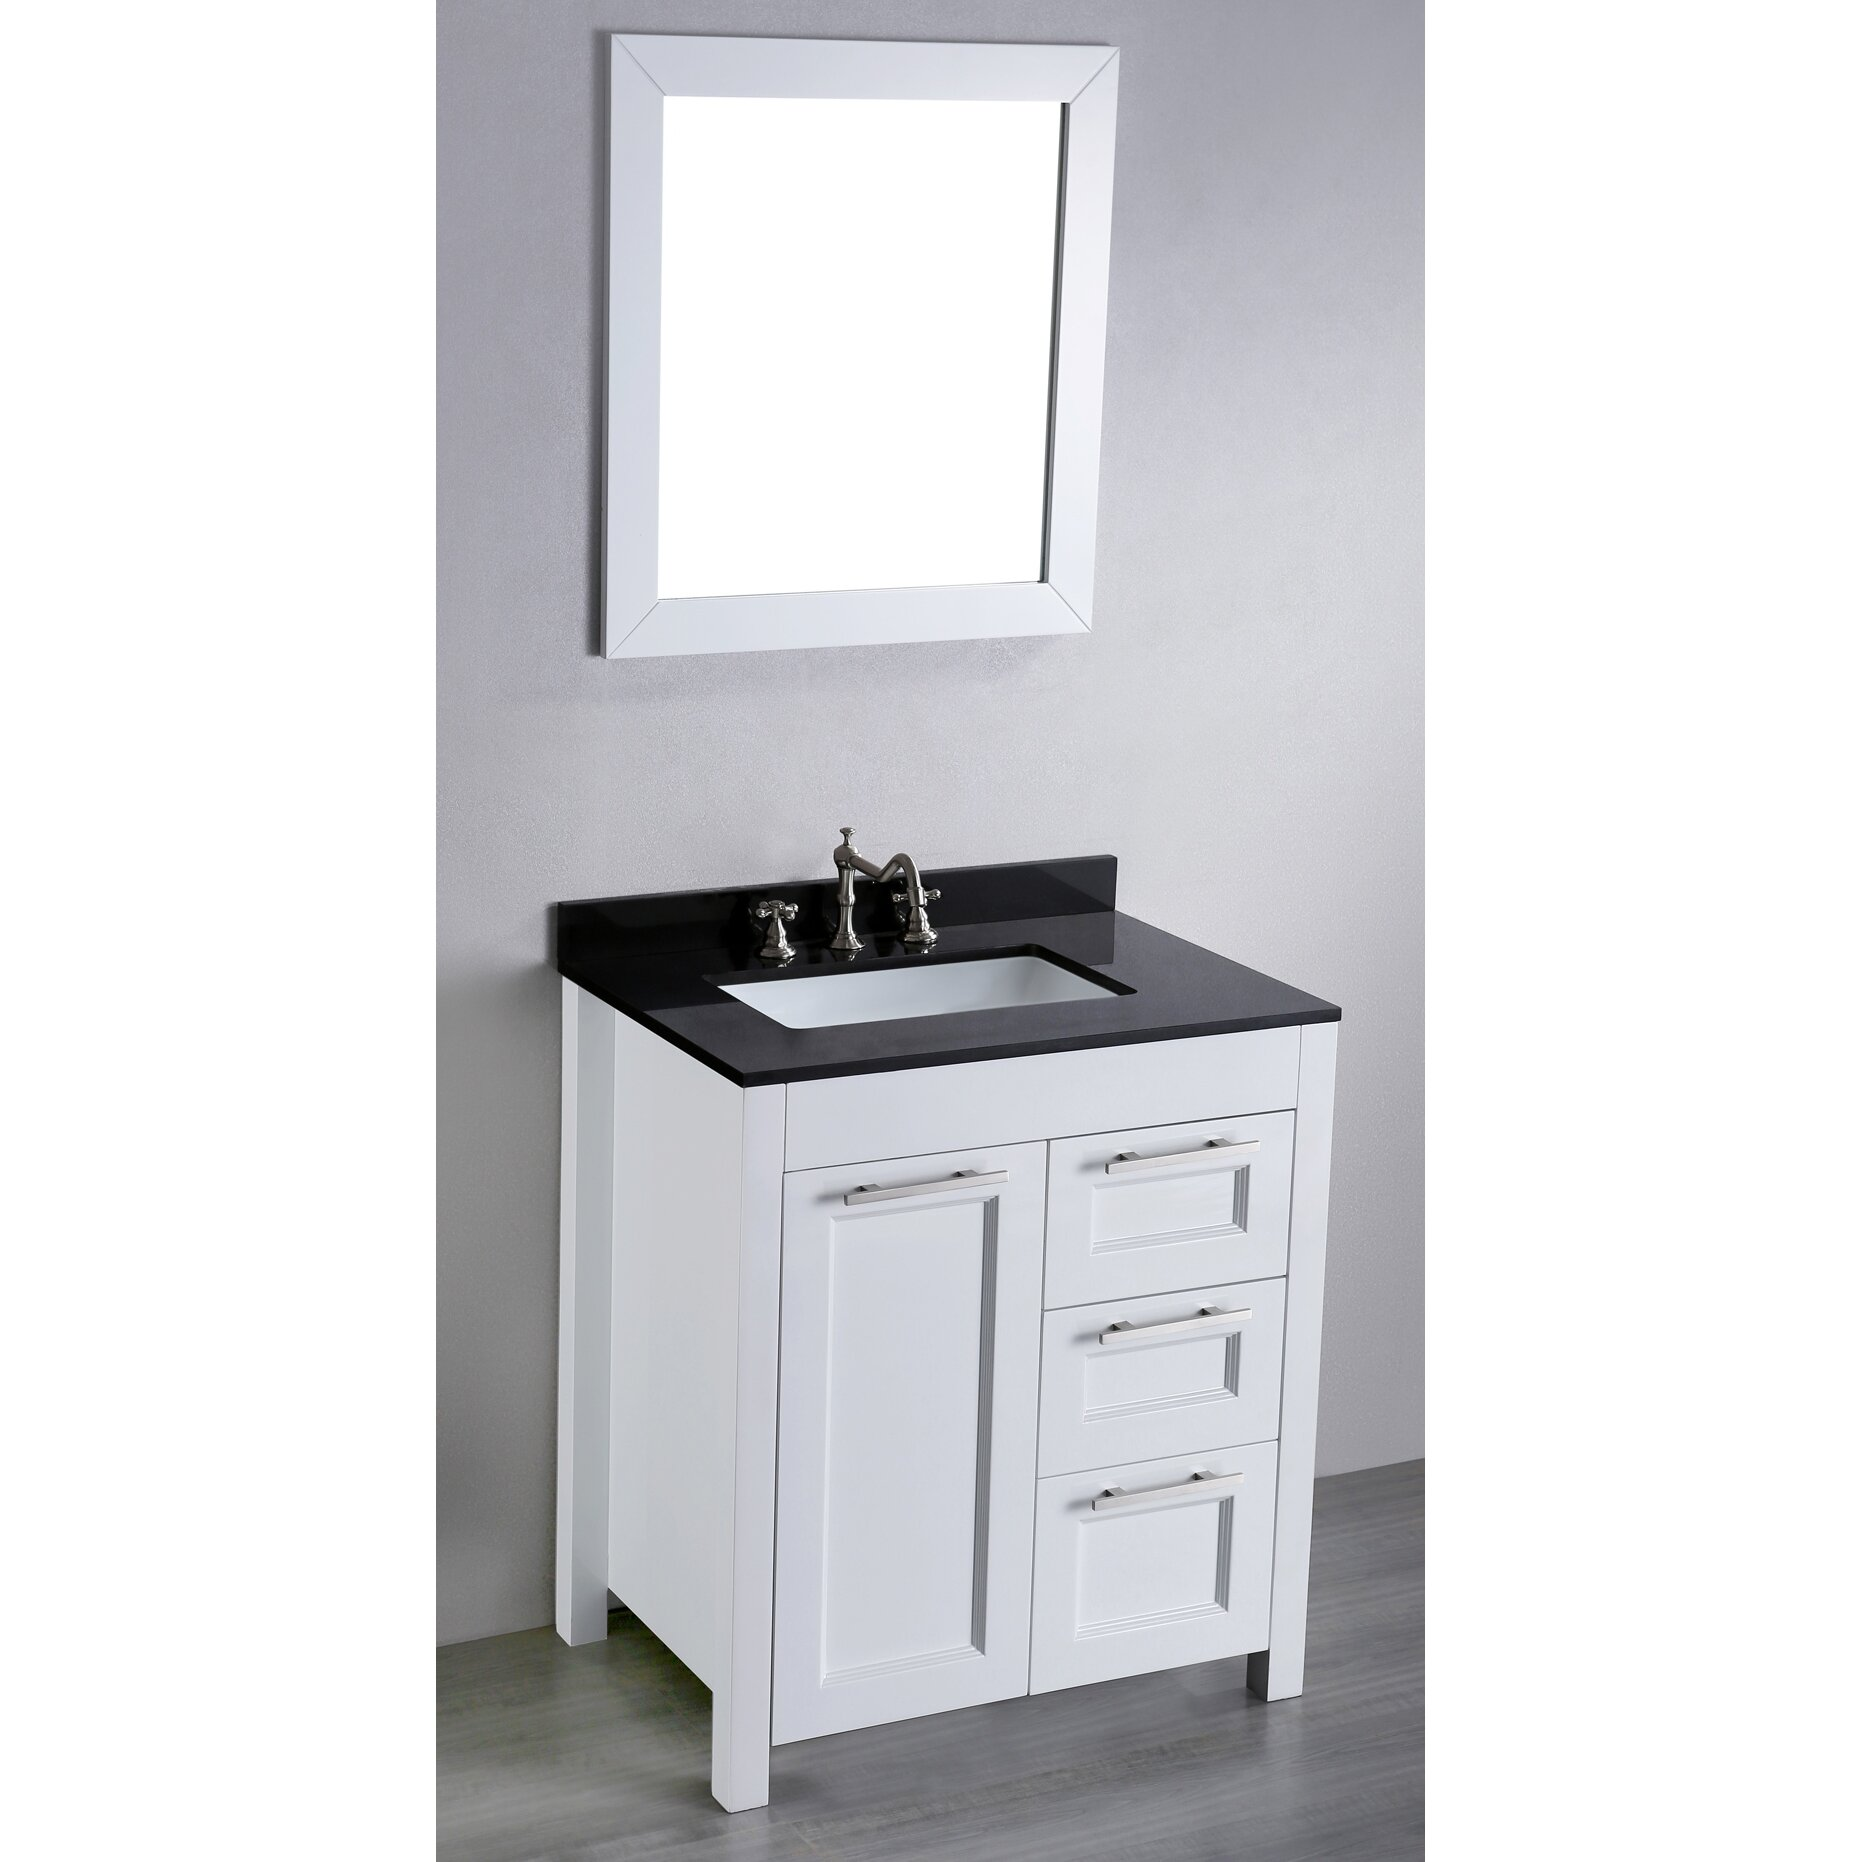 Bosconi contemporary 30 single bathroom vanity set with mirror reviews wayfair - Kona modern bathroom vanity set ...